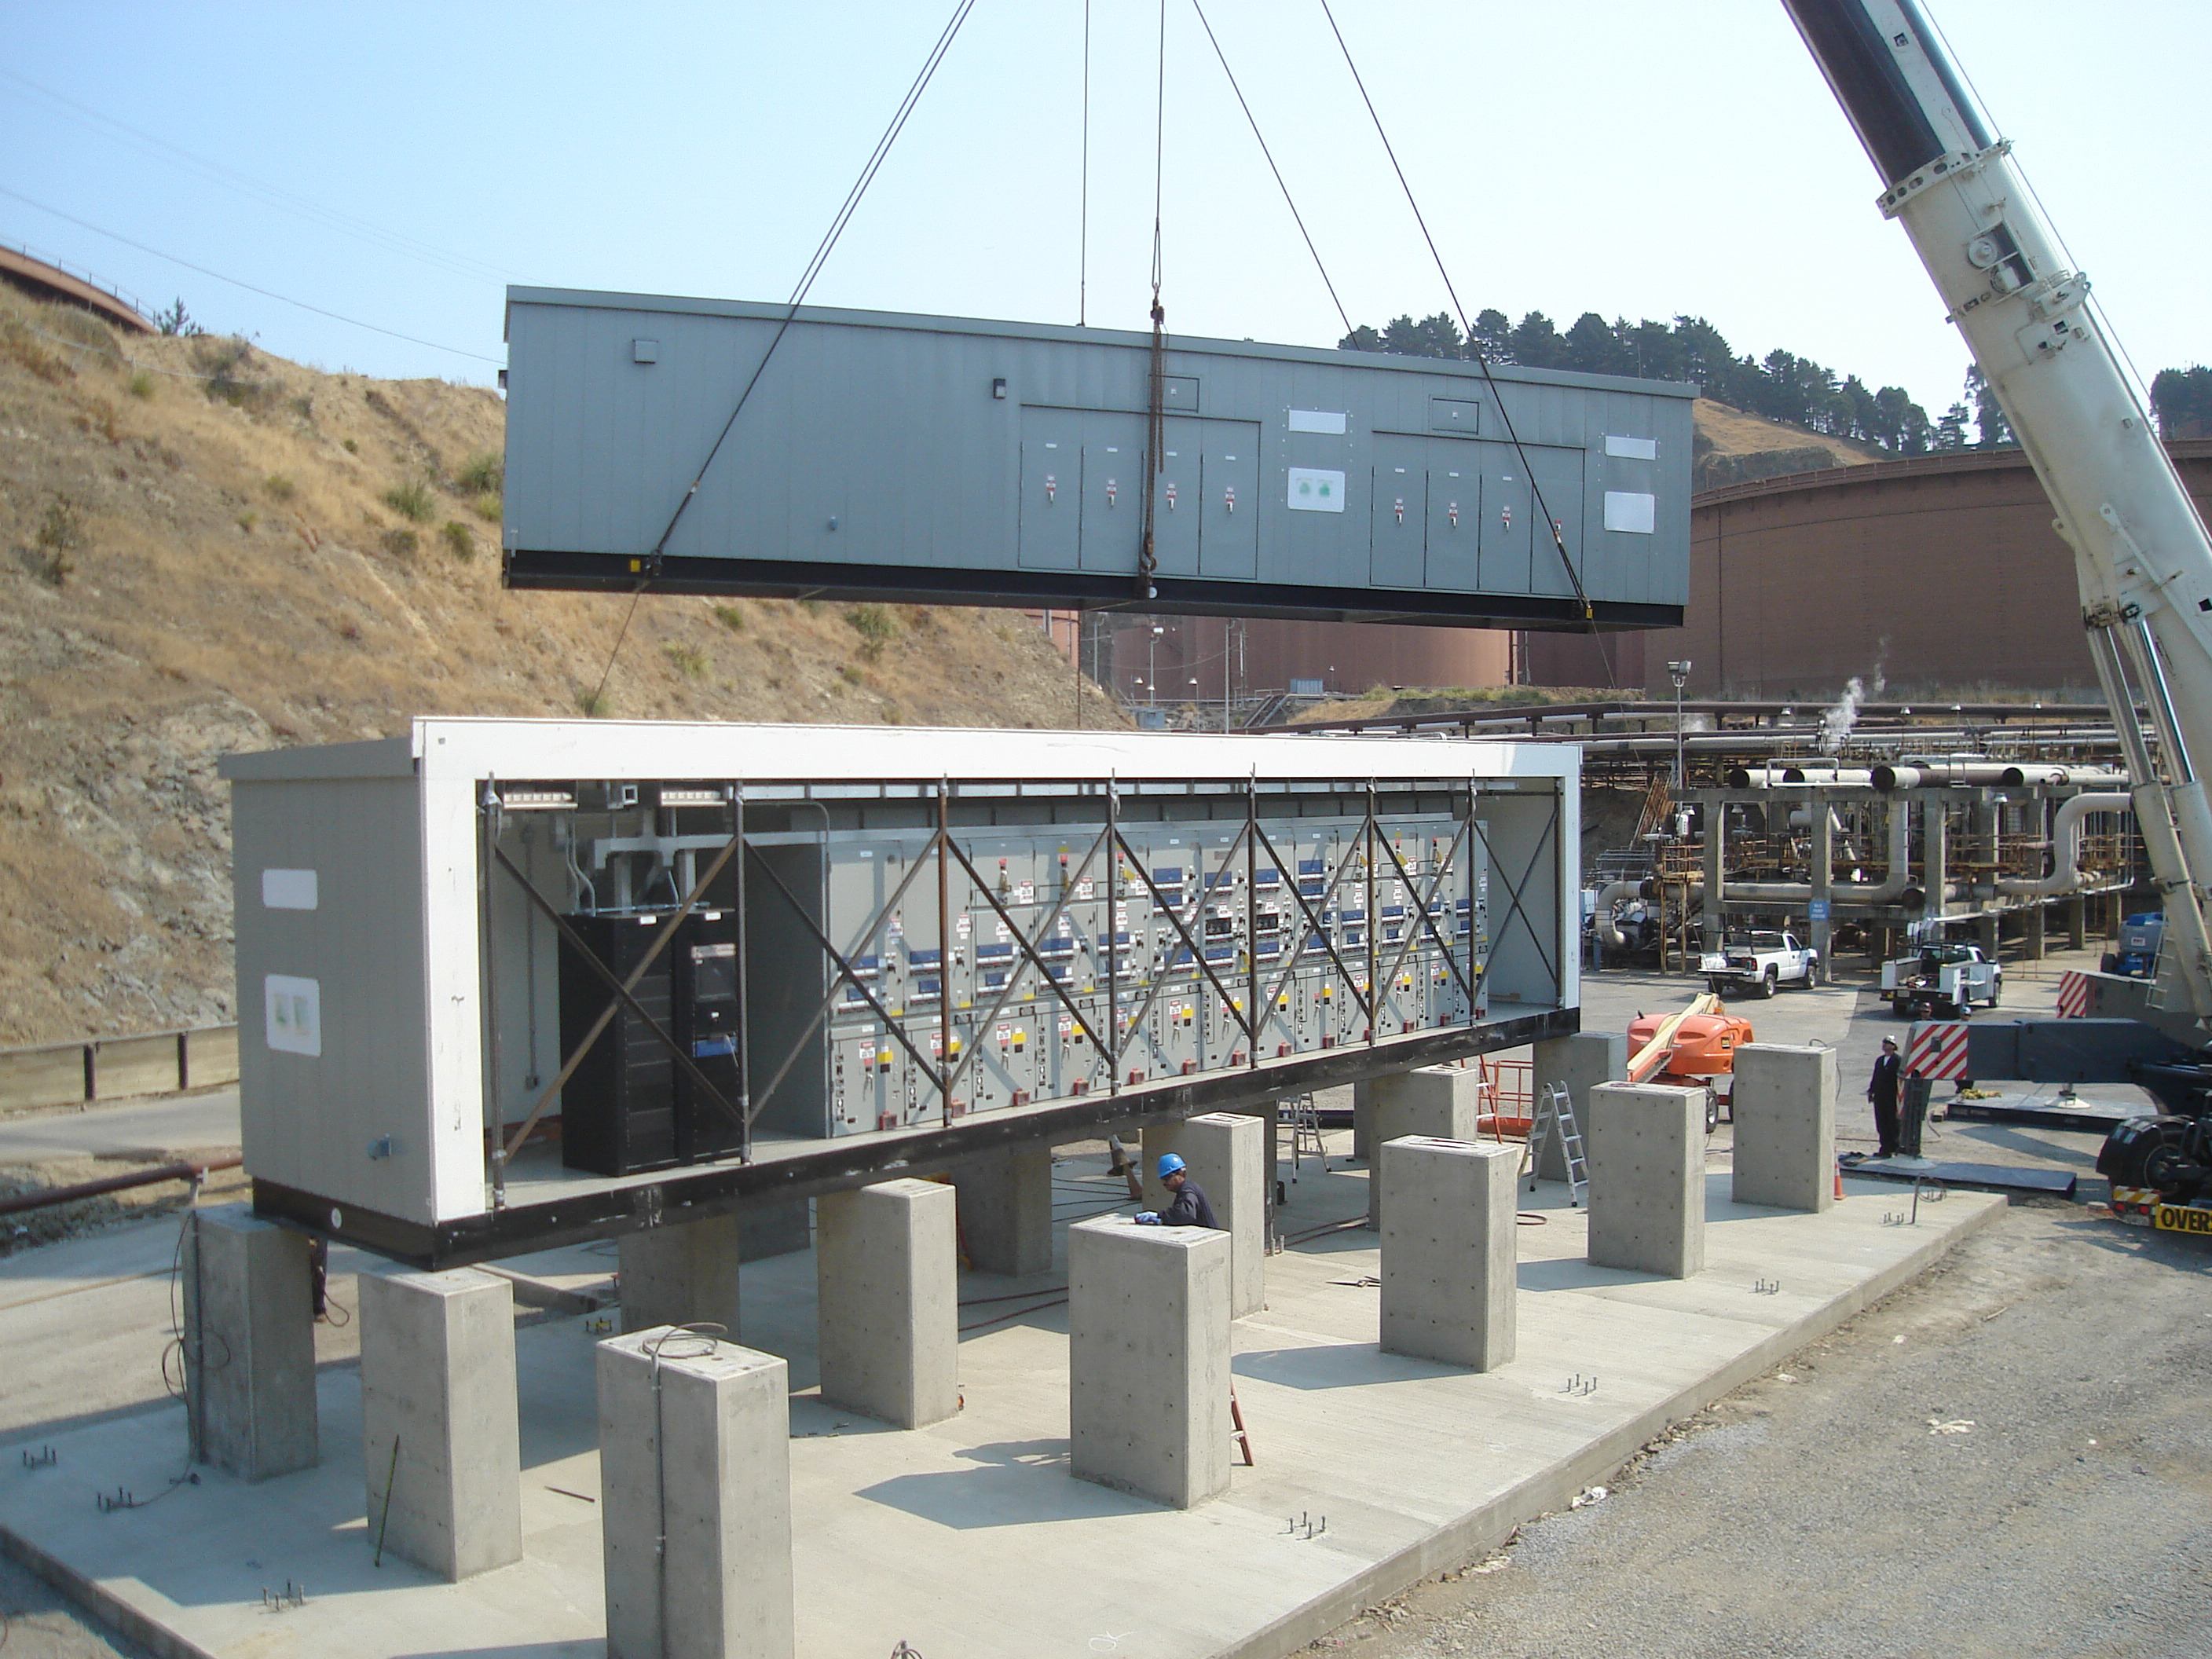 Substation Design & Electrical Infrastructure - Doyon Anvil Corp